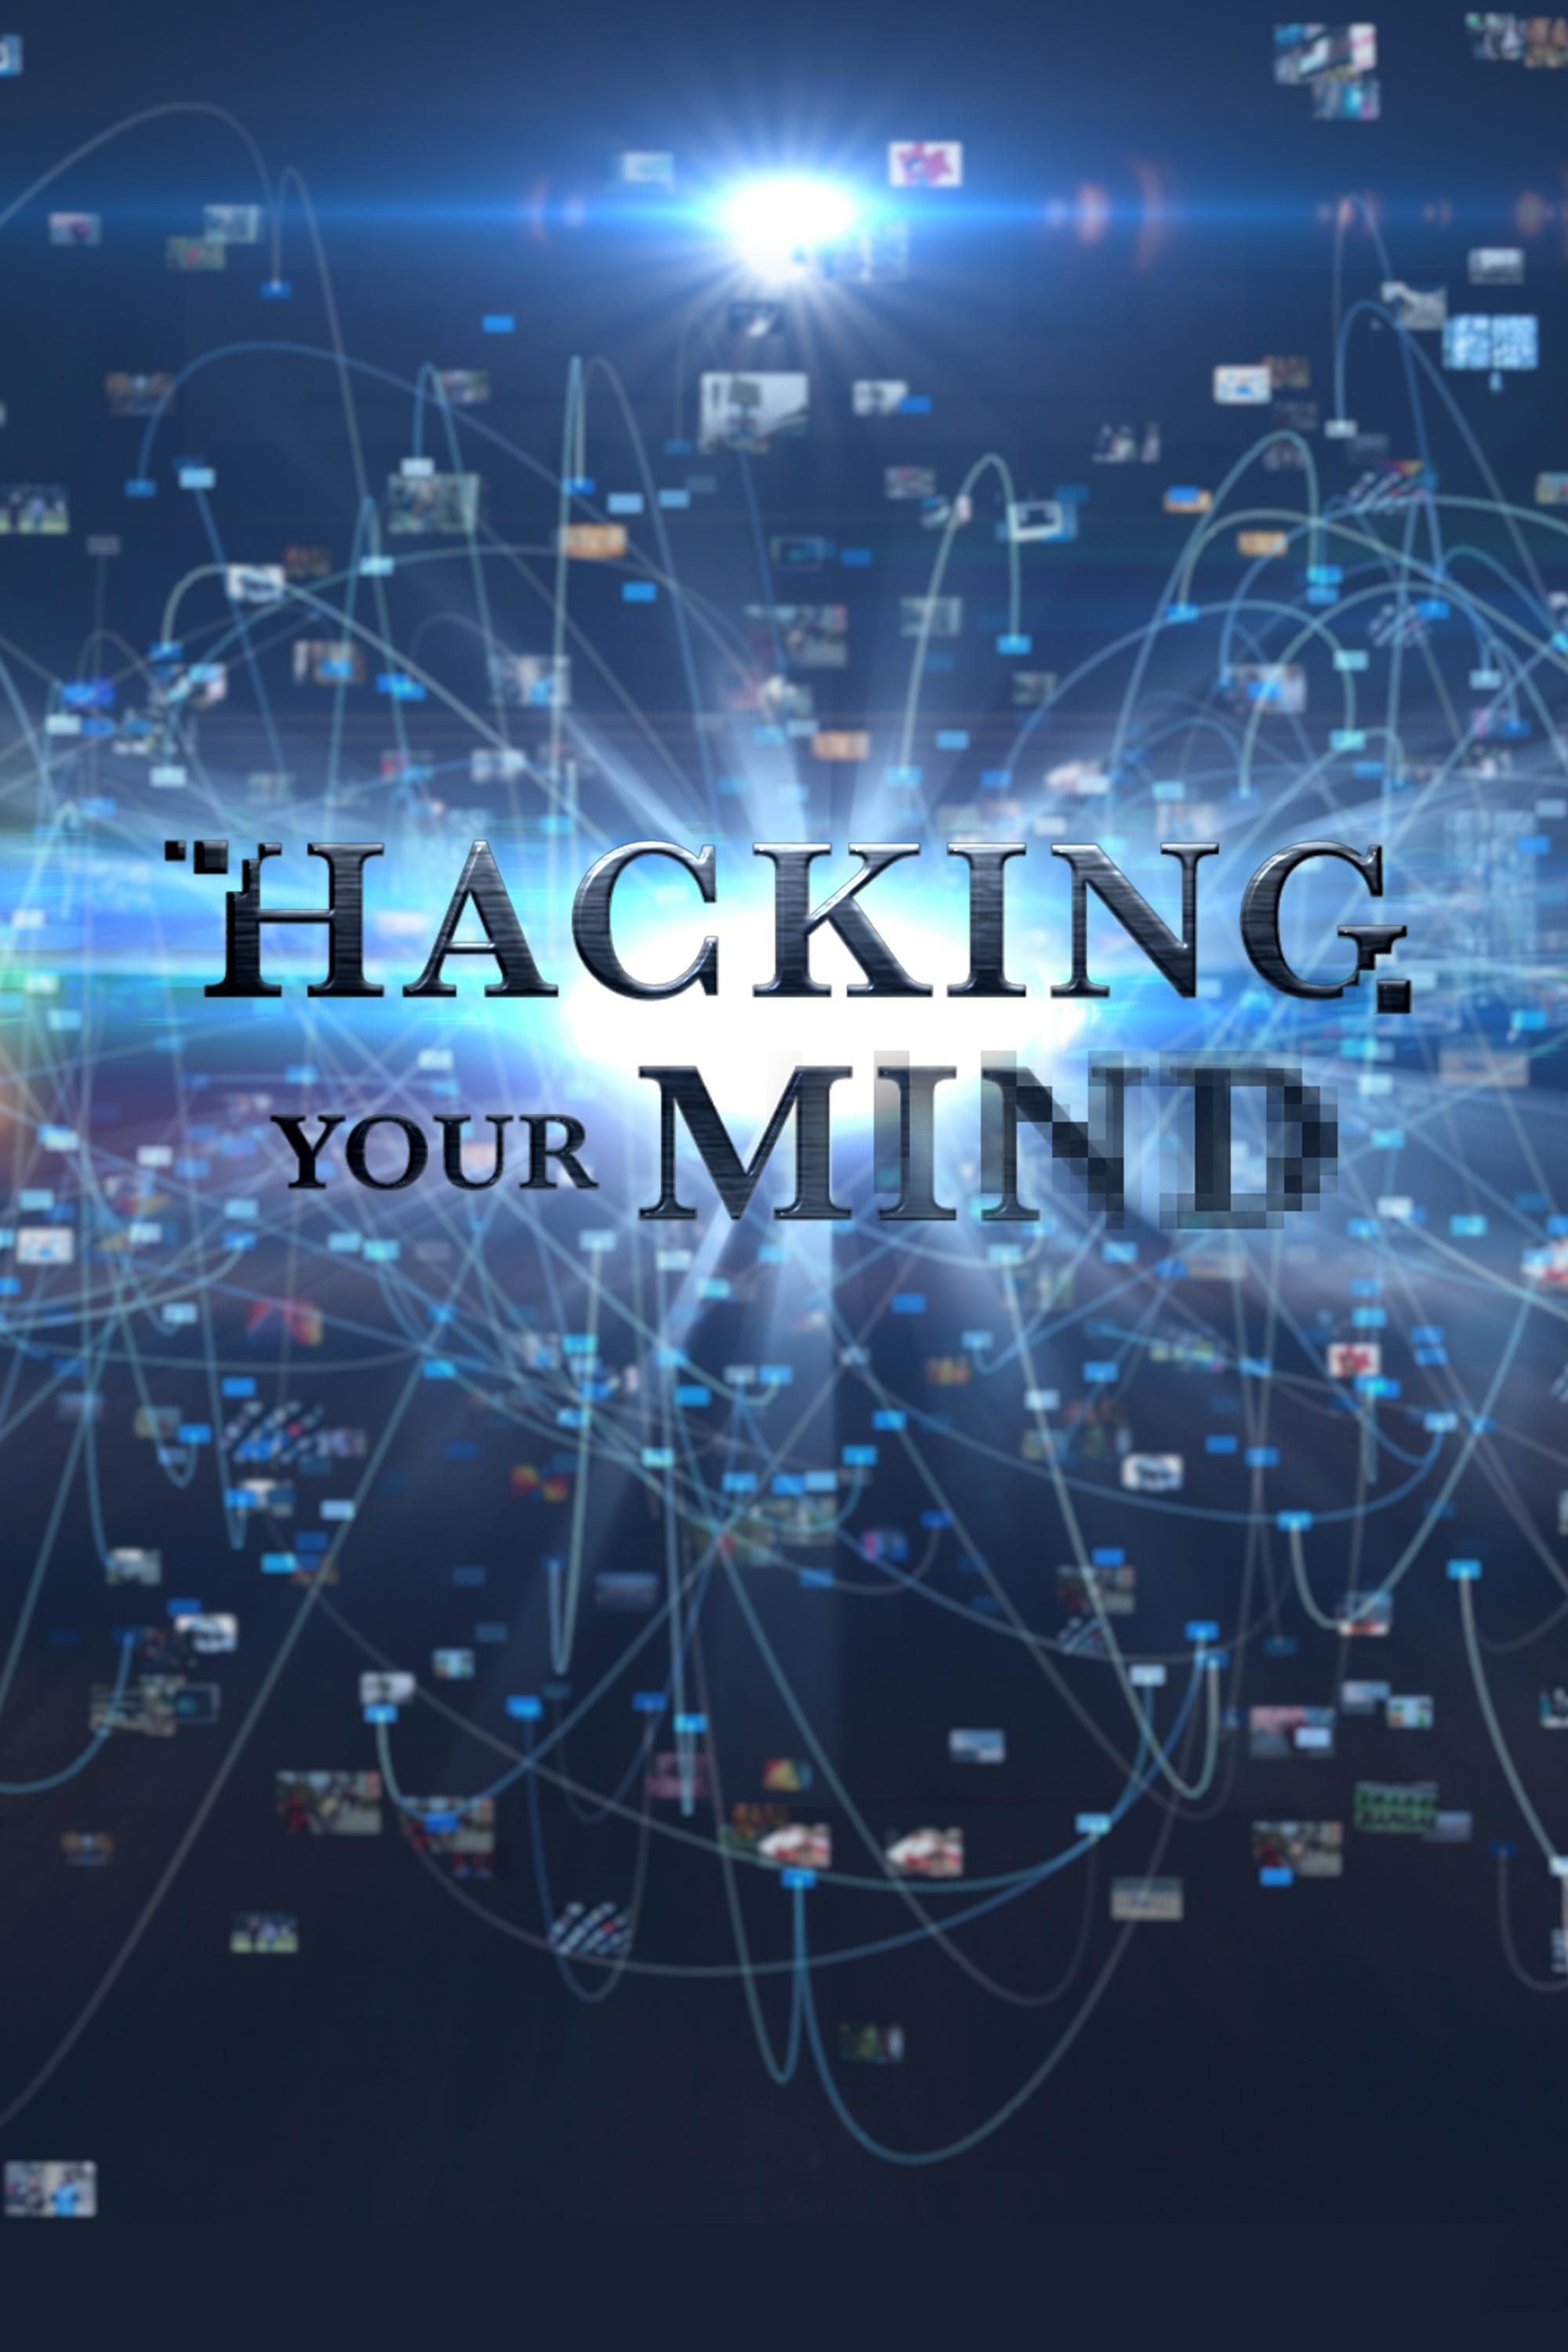 Hacking Your Mind Pbs